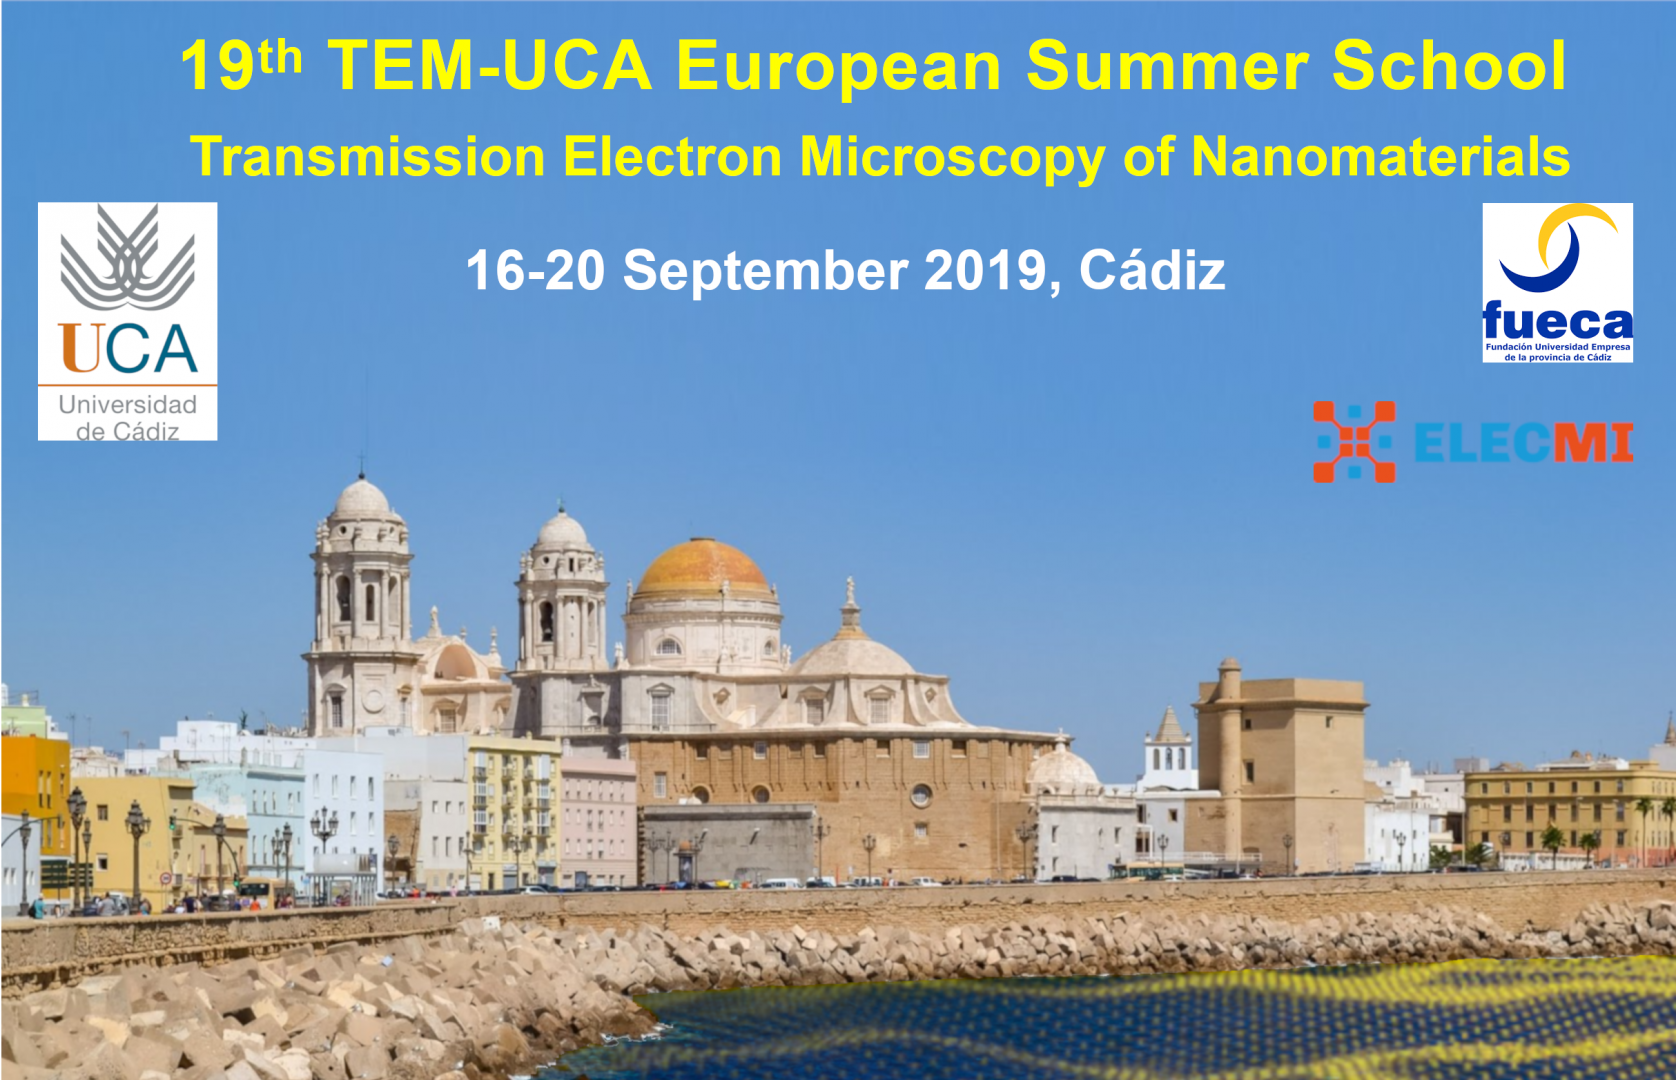 19th TEM-UCA European Summer Workshop: Transmission Electron Microscopy of Nanomaterials